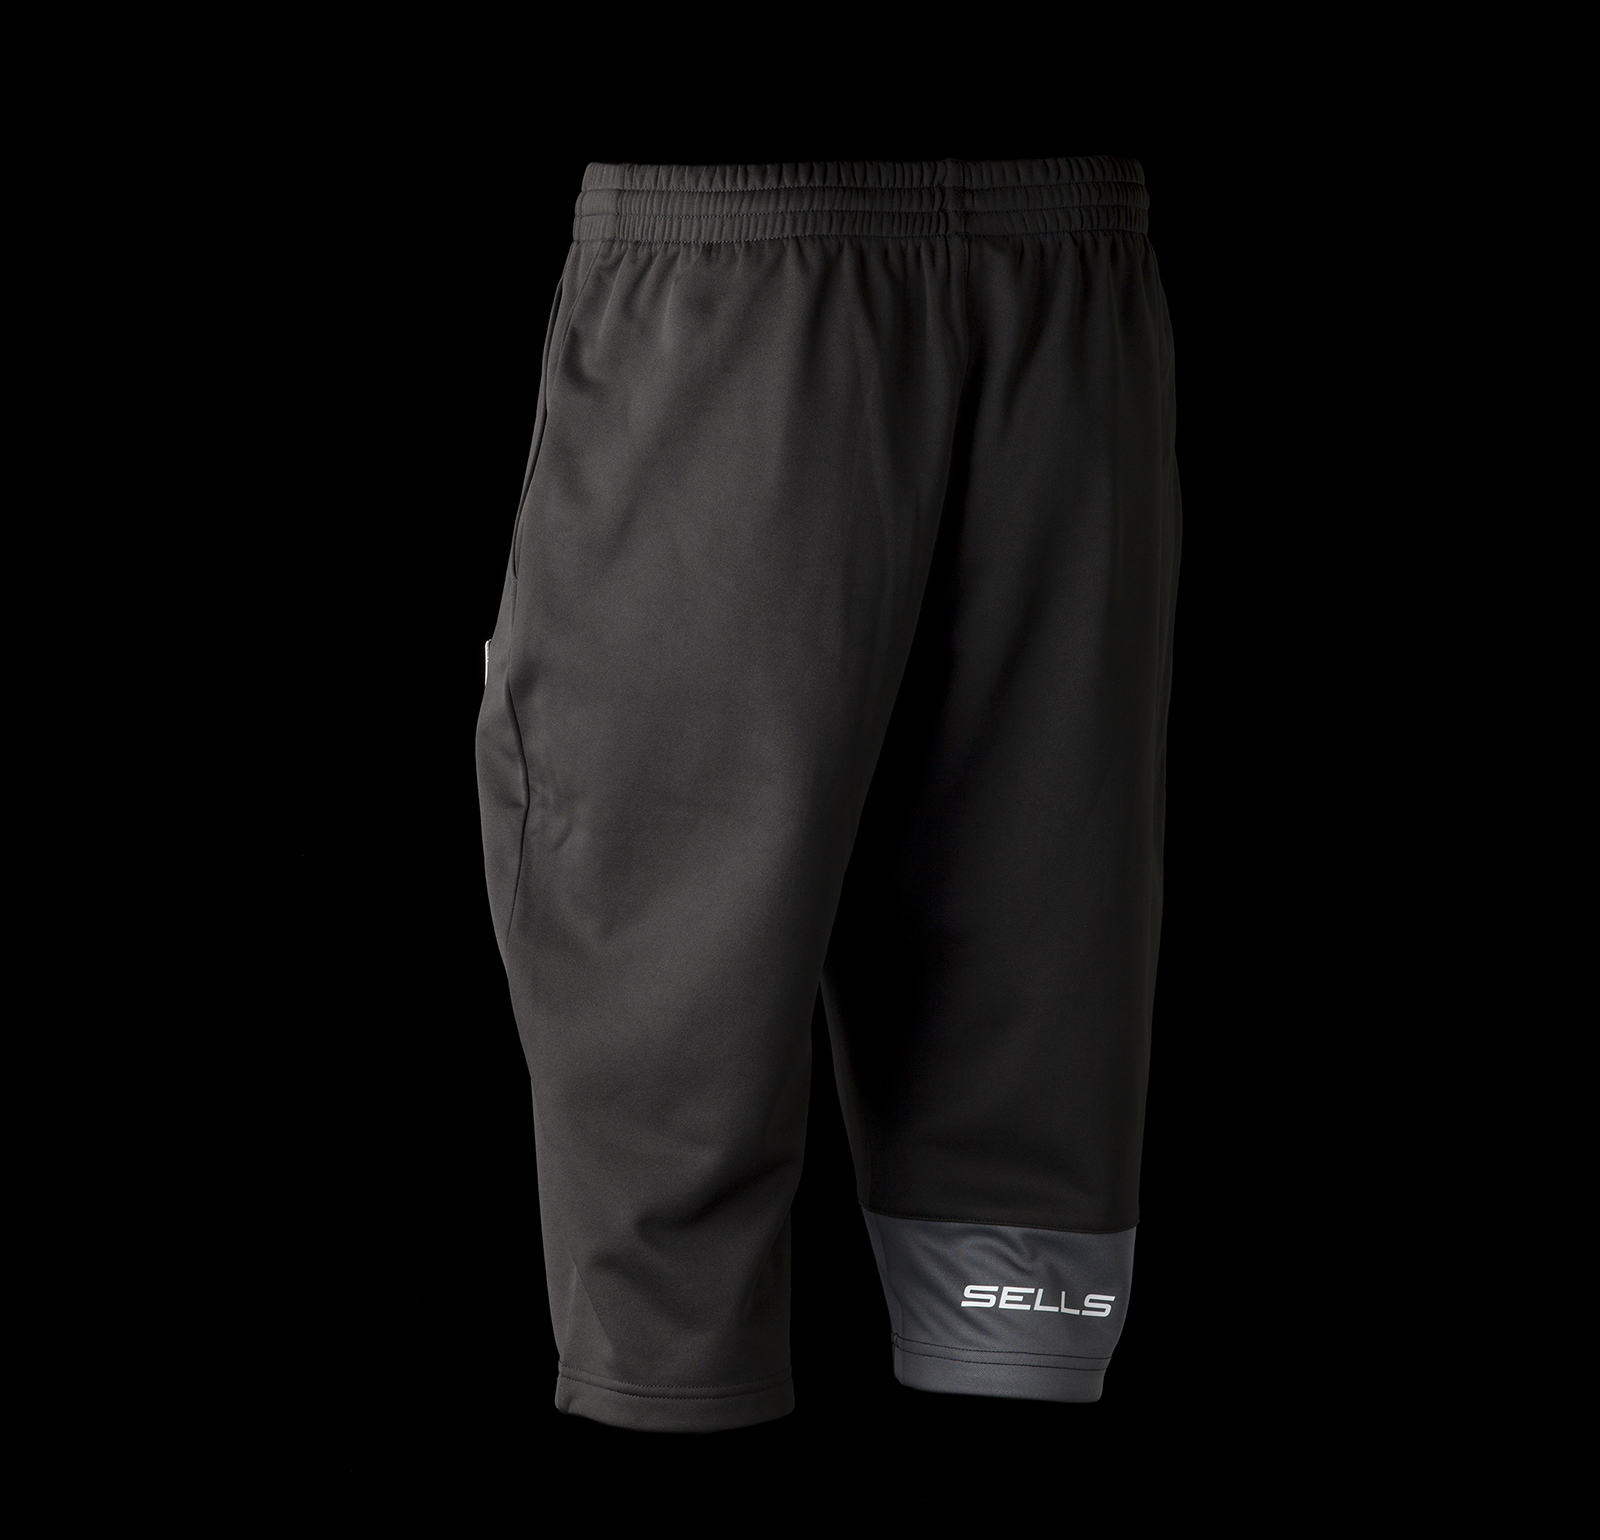 excel-3-4-pant-promo-31